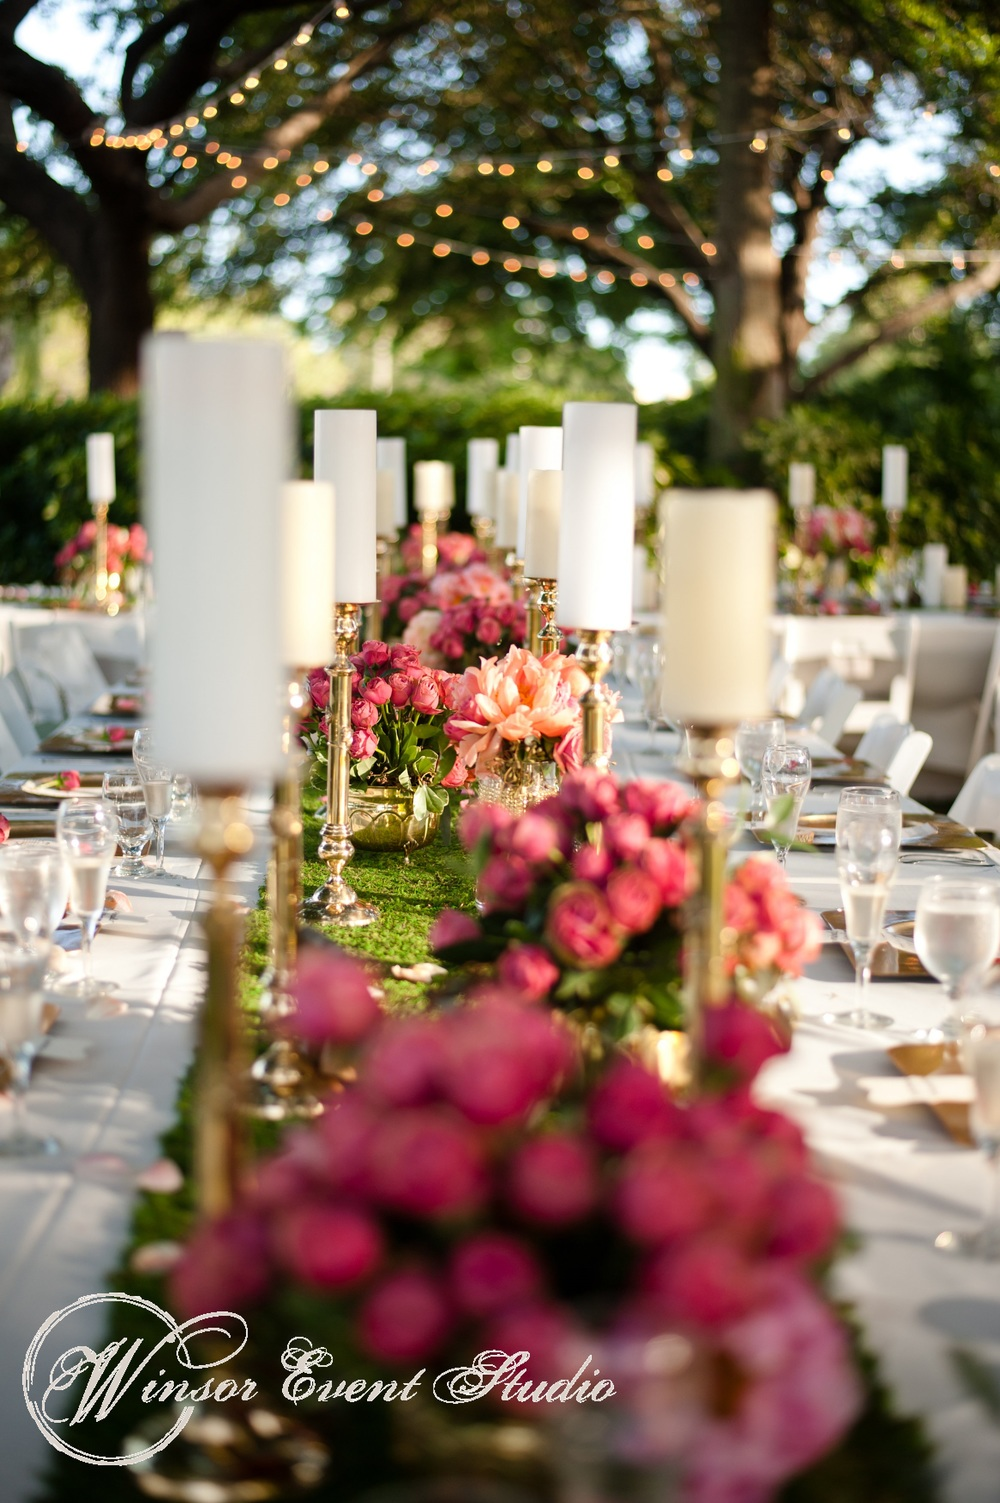 Bright coral flowers and gold candlesticks really popped against the moss table runners